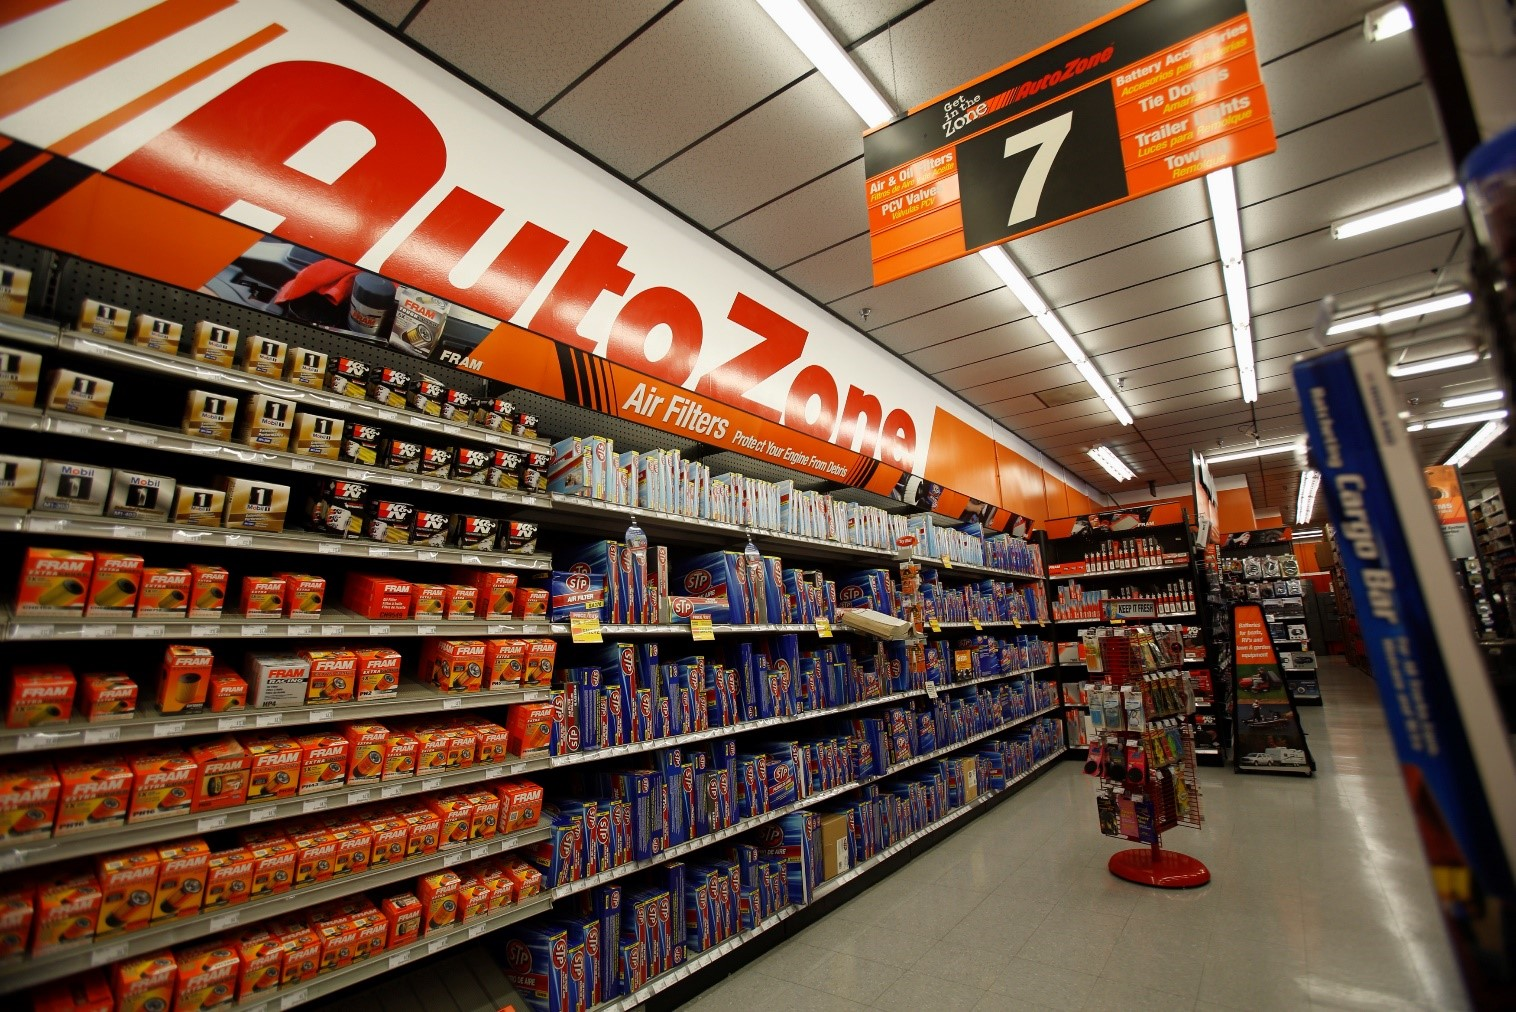 AutoZone Vs Amazon Can Warehouse Stores Still Compete With E-Commerce Giant-fig 2 Image